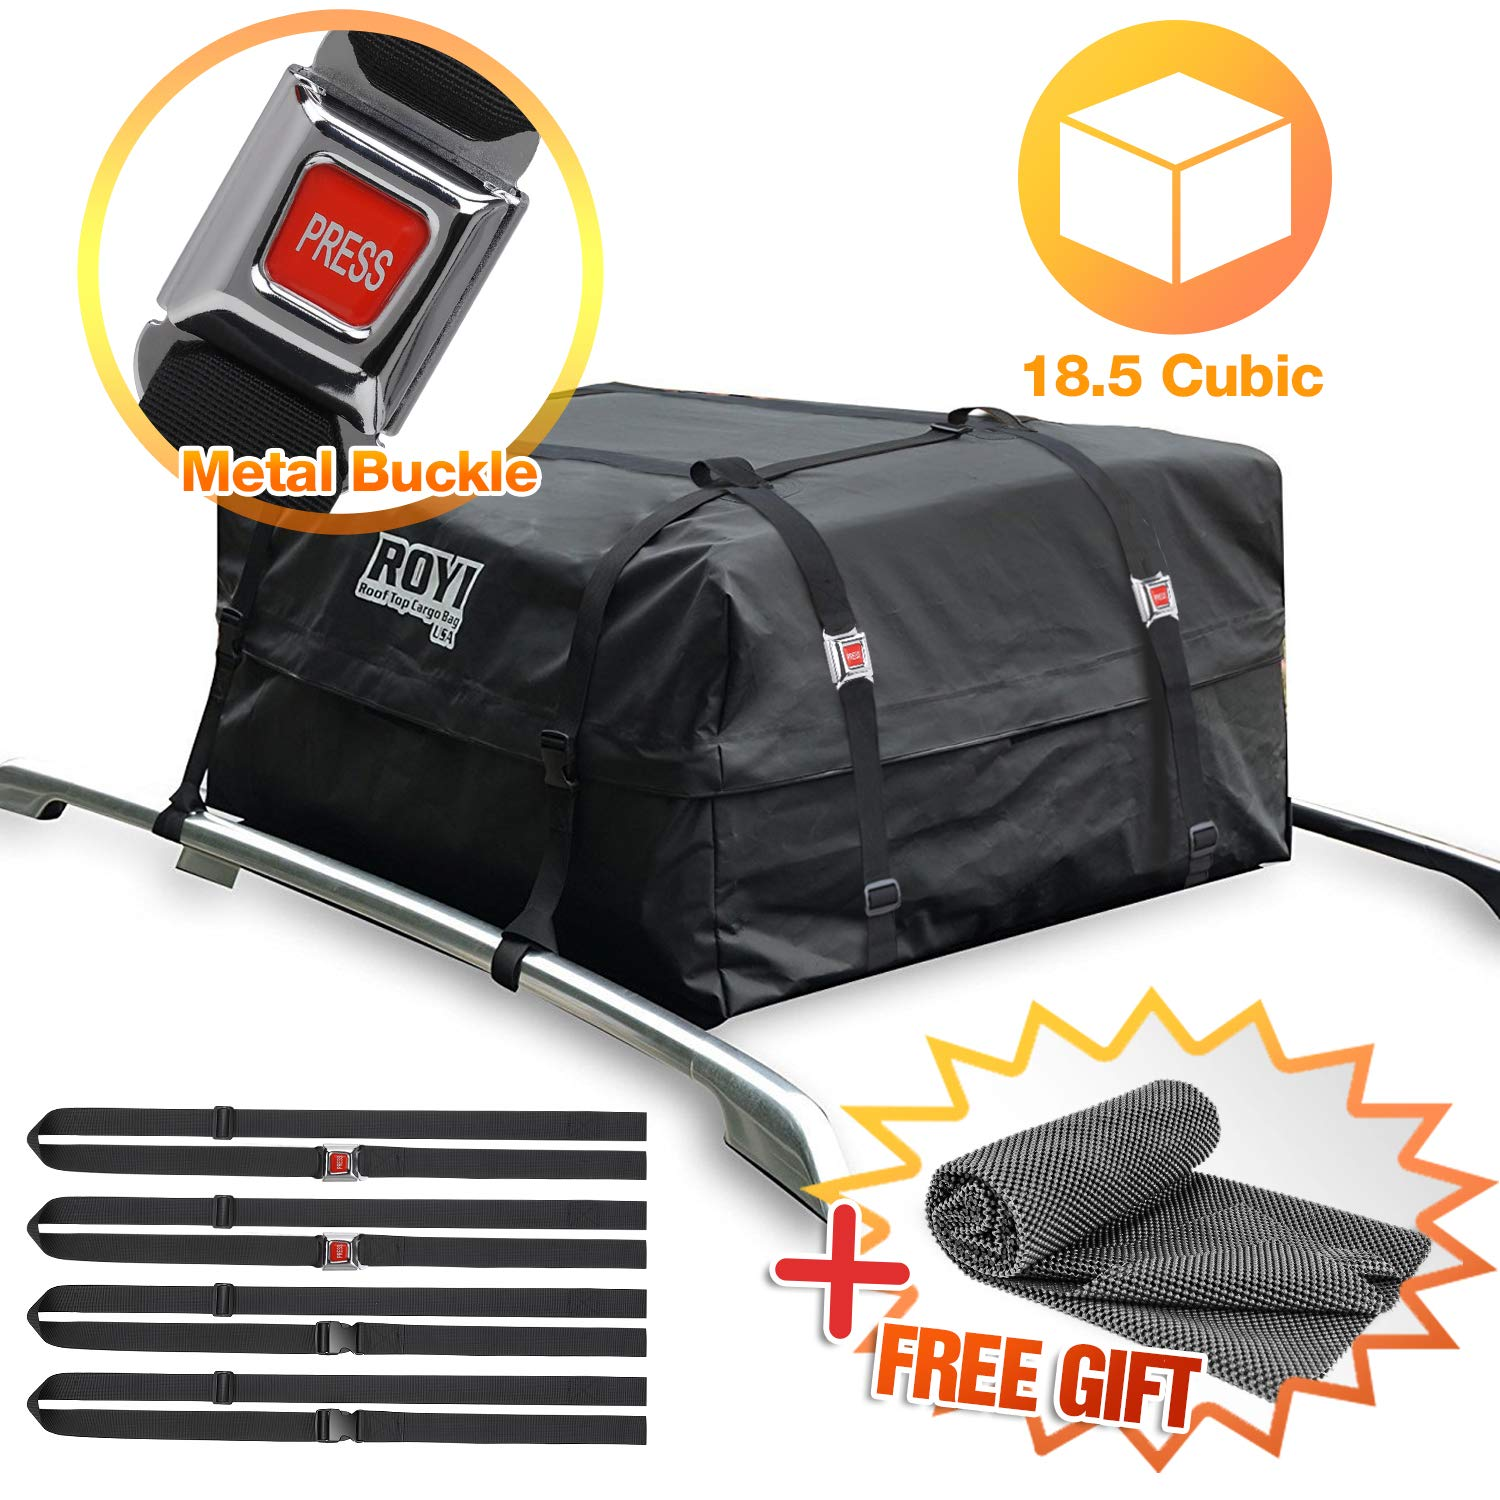 100% Waterproof Roof Cargo Bag 18.5 Cubic Ft Dual Seam with Heavy Duty Metal Buckle Straps Top Carrier Storage Box Bonus 1 Rooftop Protective Mat Fit for Cars with/Without Racks(4 Straps) BOVN